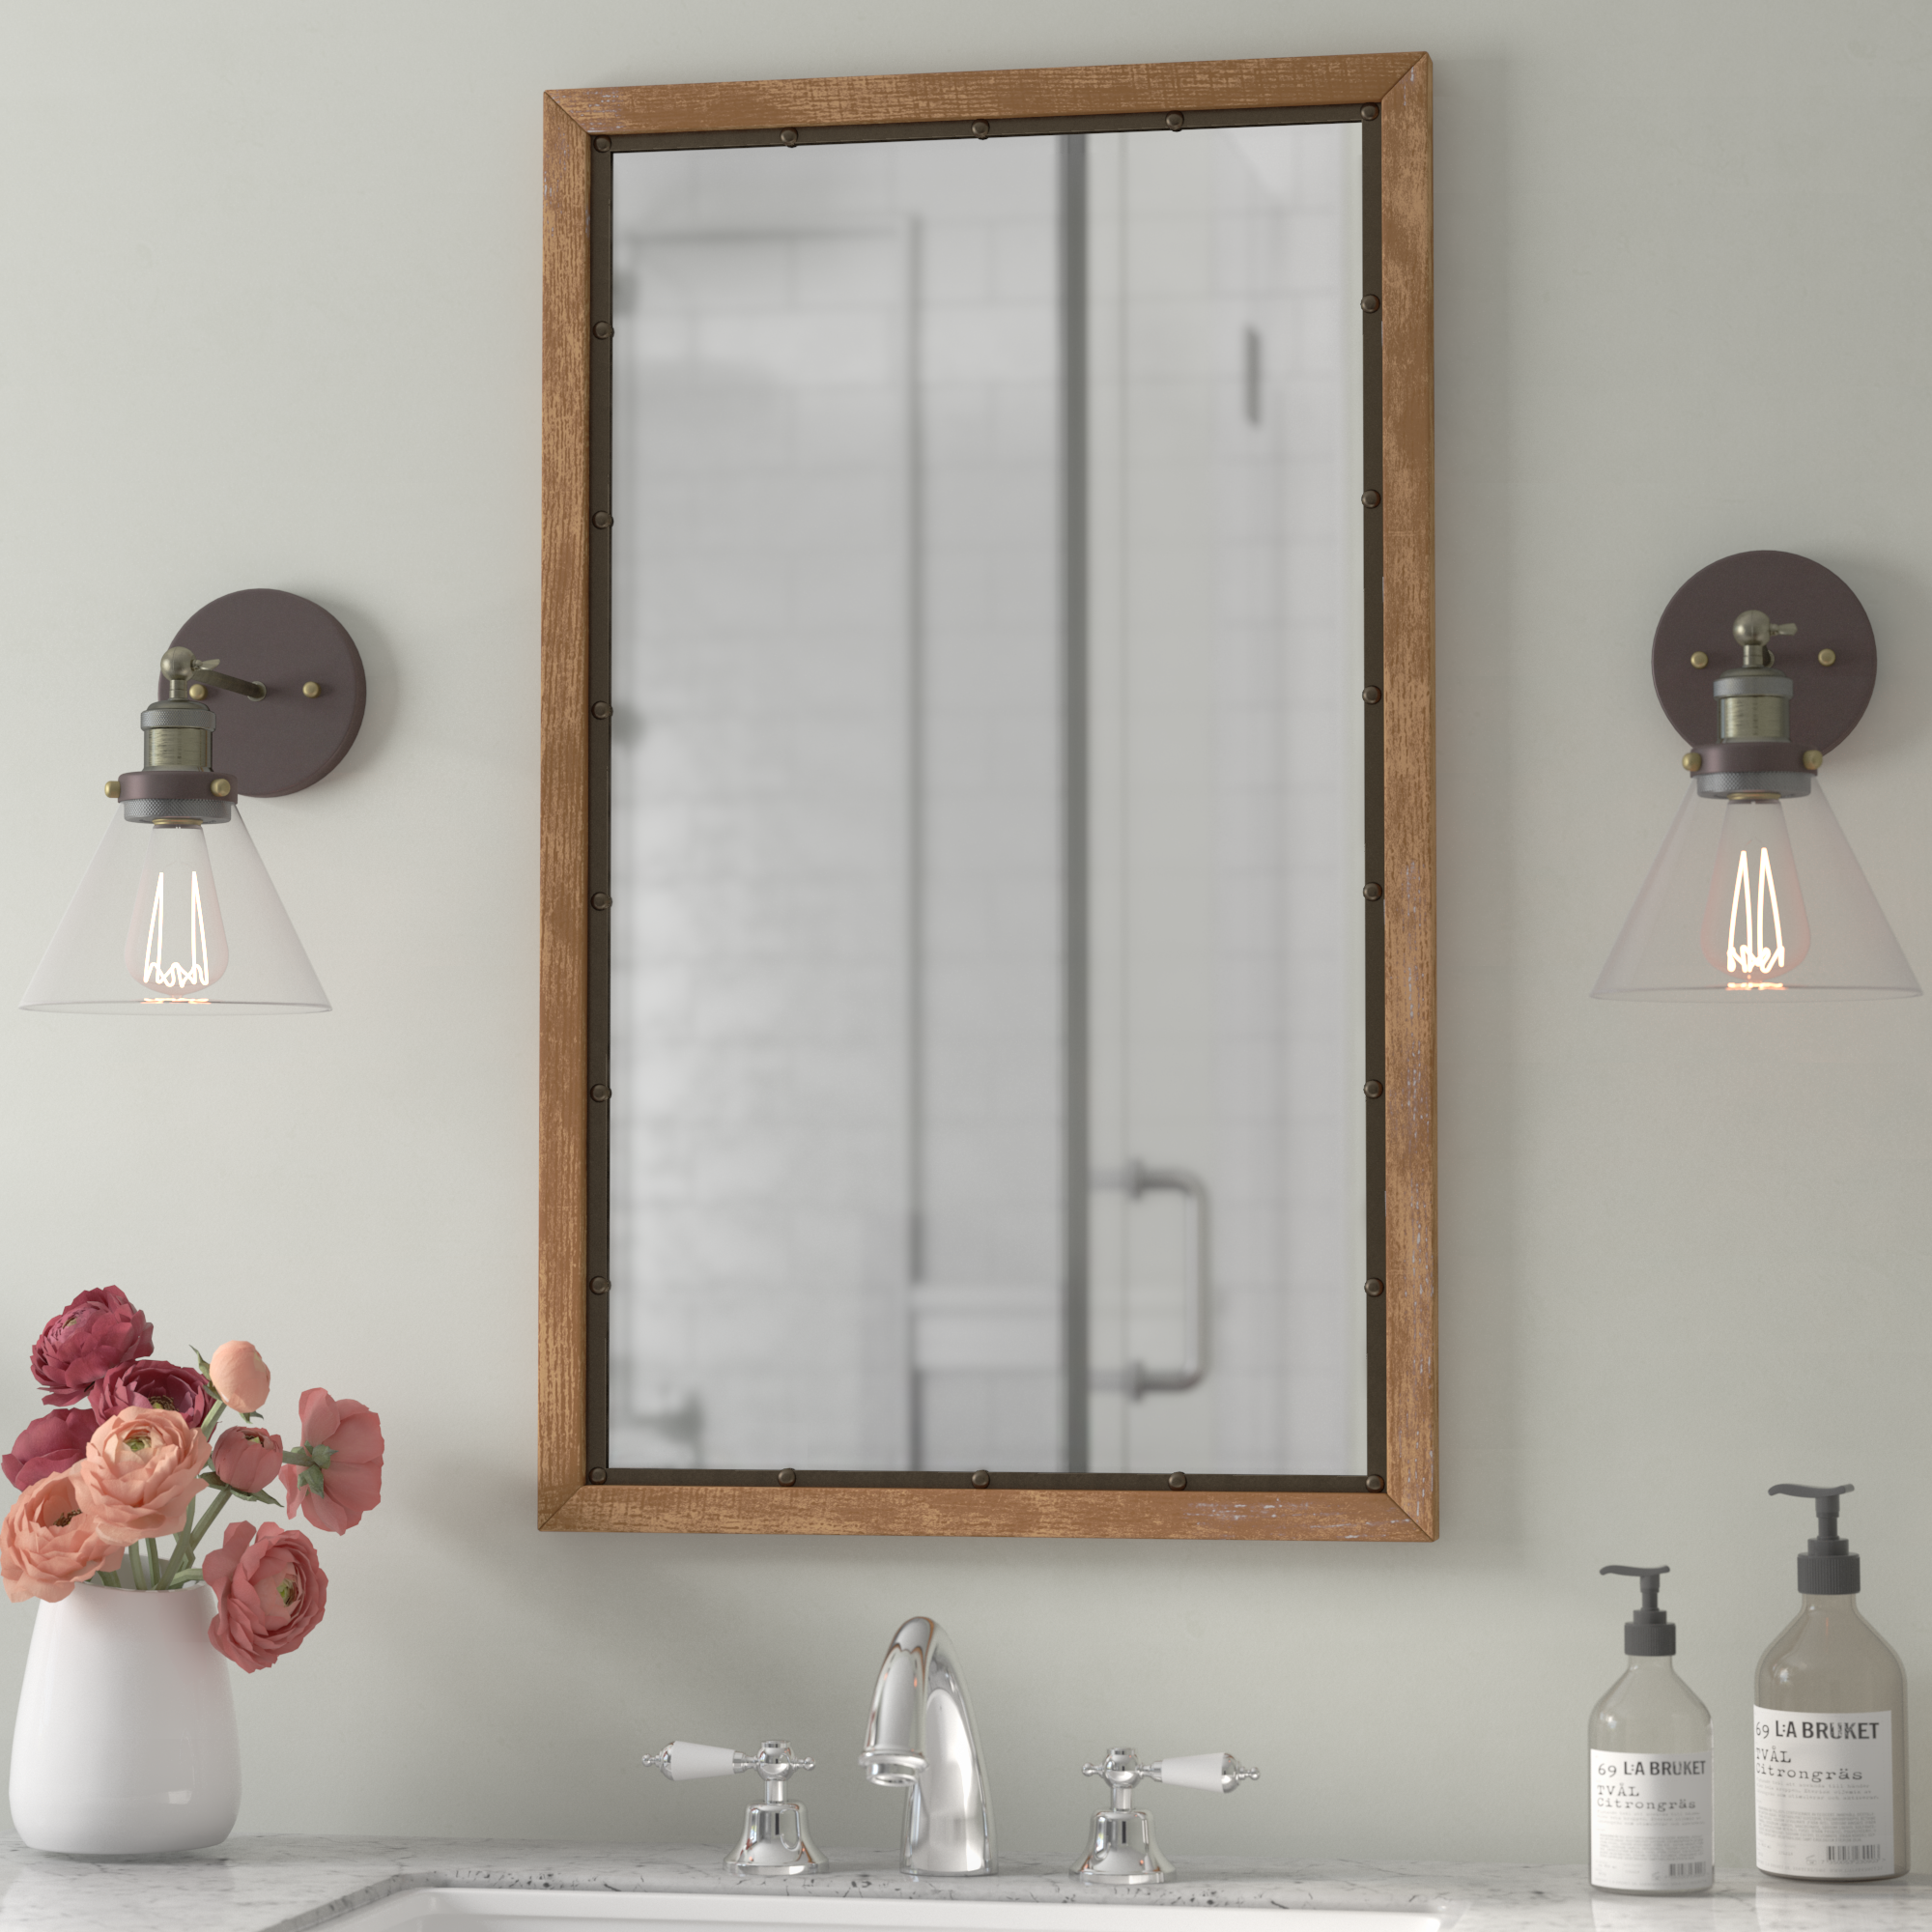 bathroom mirrors birch lane default name uttermost asher blue accent table small glass top reclaimed wood kitchen wall decor meyda tiffany desk lamp ashley furniture piece set